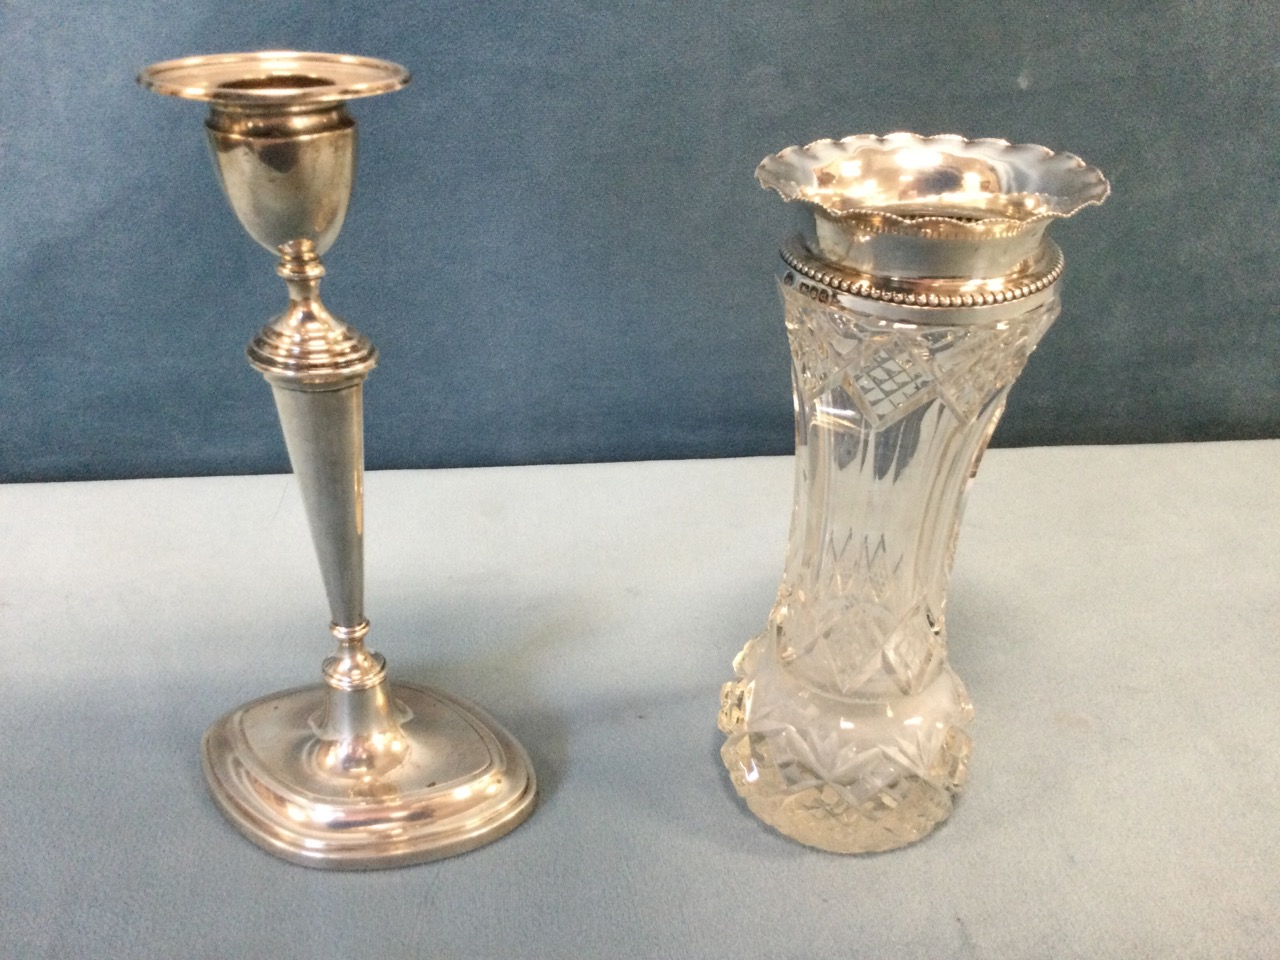 A Victorian cut glass vase with bead mounted waved hallmarked silver mounts - London,1899, William